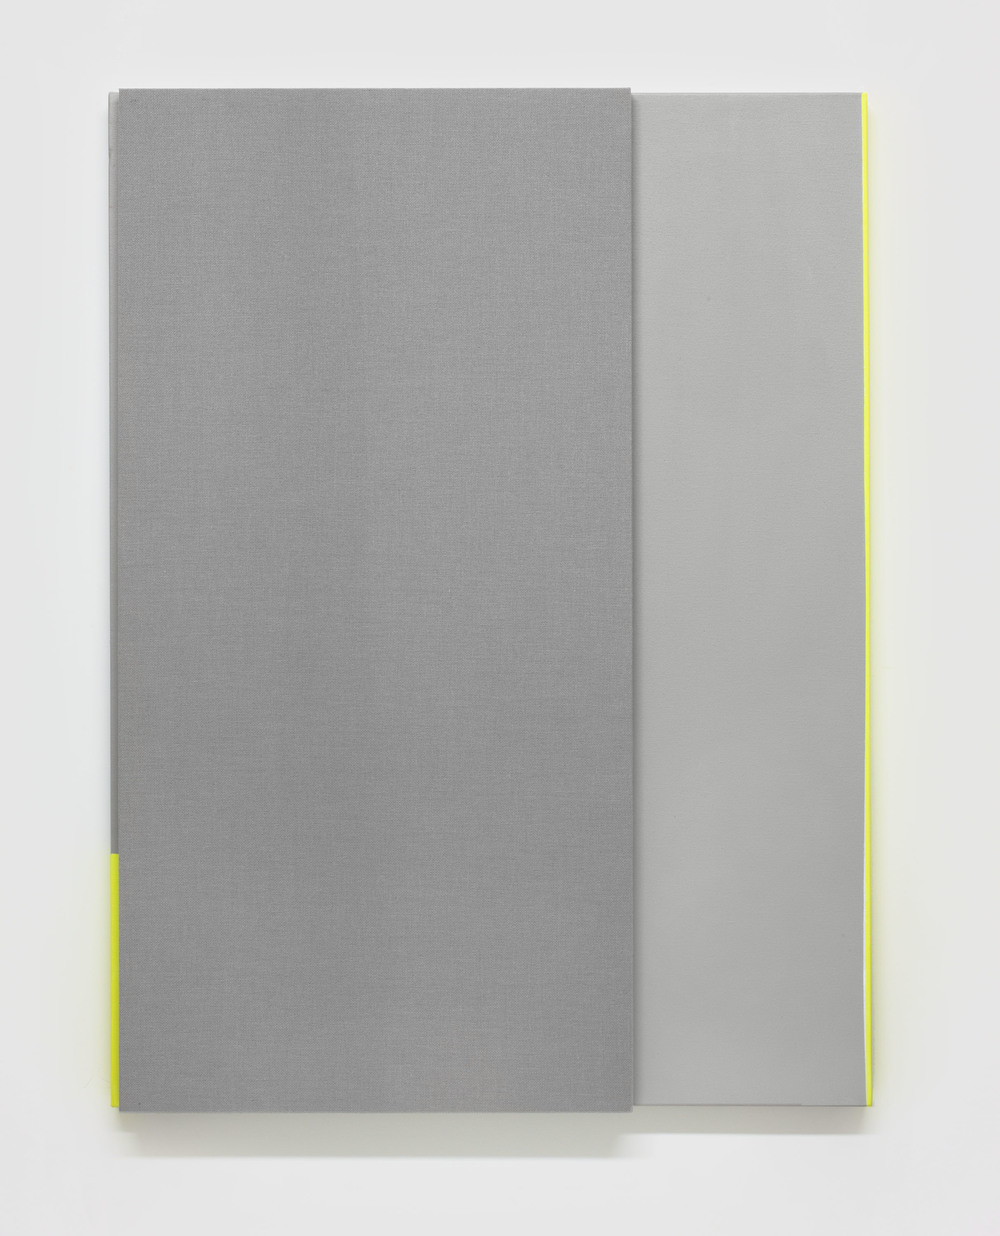 Soft Gray Tone with Reverberation #2 -- Acoustic absorber panel and acrylic paint on canvas, 36 x 48 inches each, 2013.